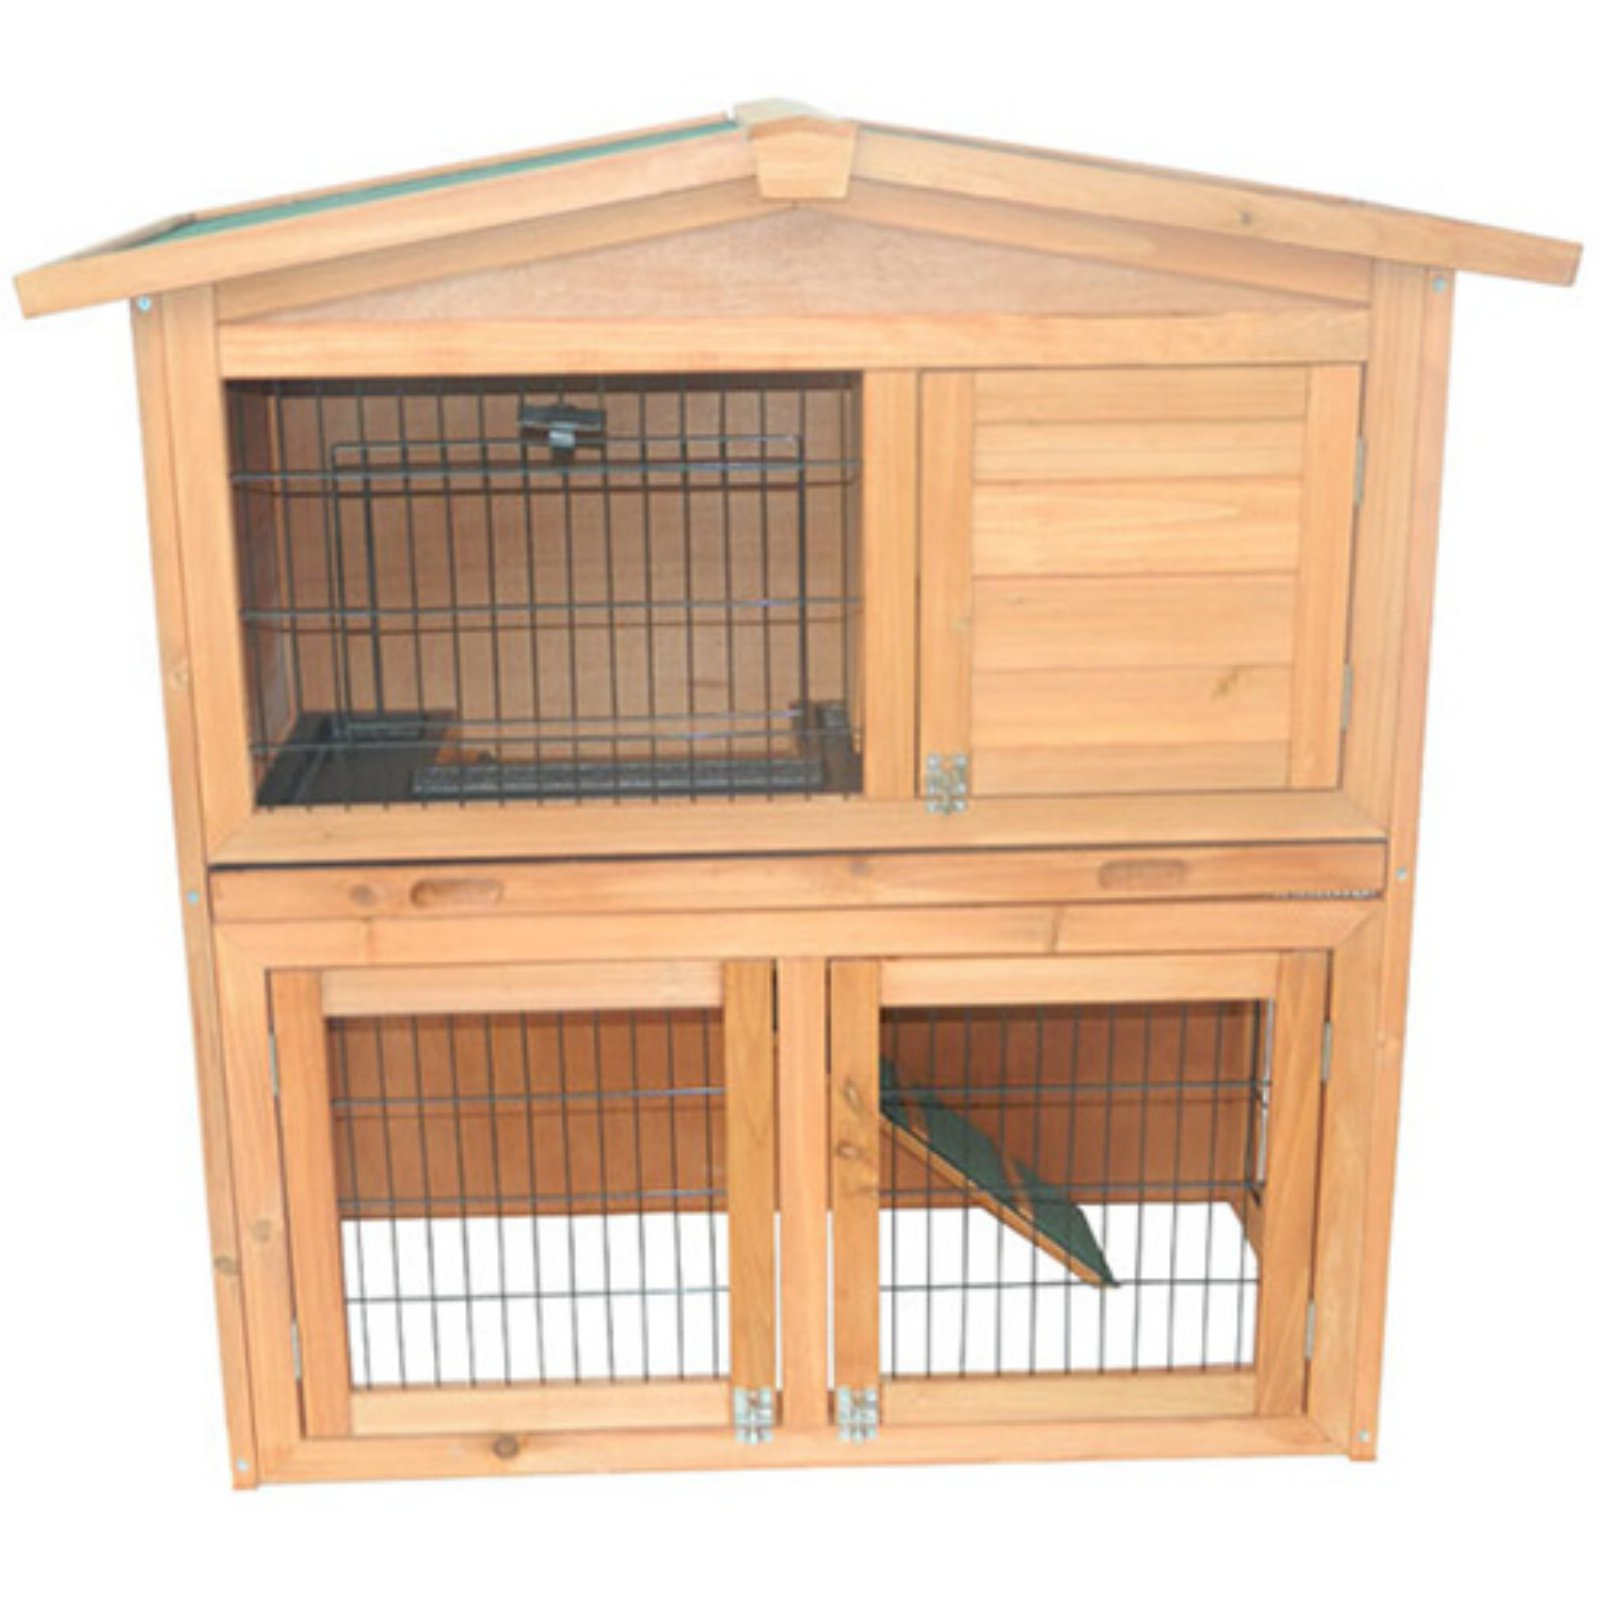 Pawhut 40 in. Wooden Rabbit Hutch/Small Animal House Pet Cage